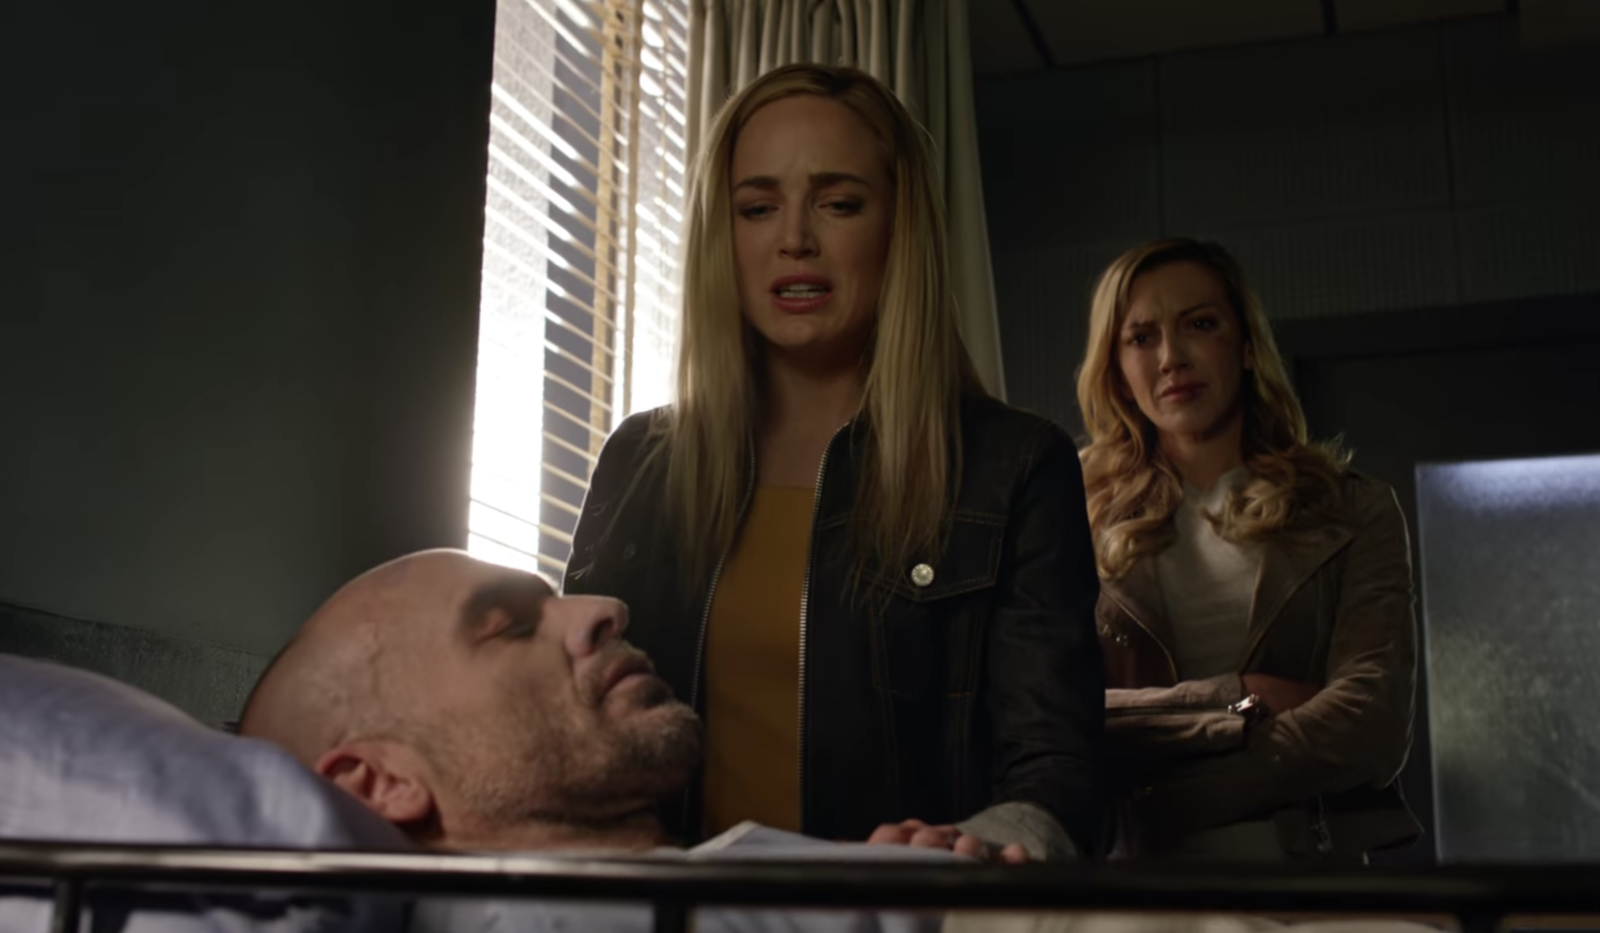 Arrow  said farewell to an original cast member when Quentin Lance was killed during Diaz's reign of terror on Star City. -  Another original cast member we said farewell to this year, Quentin died after saving Earth-2's Laurel from Ricardo Diaz.